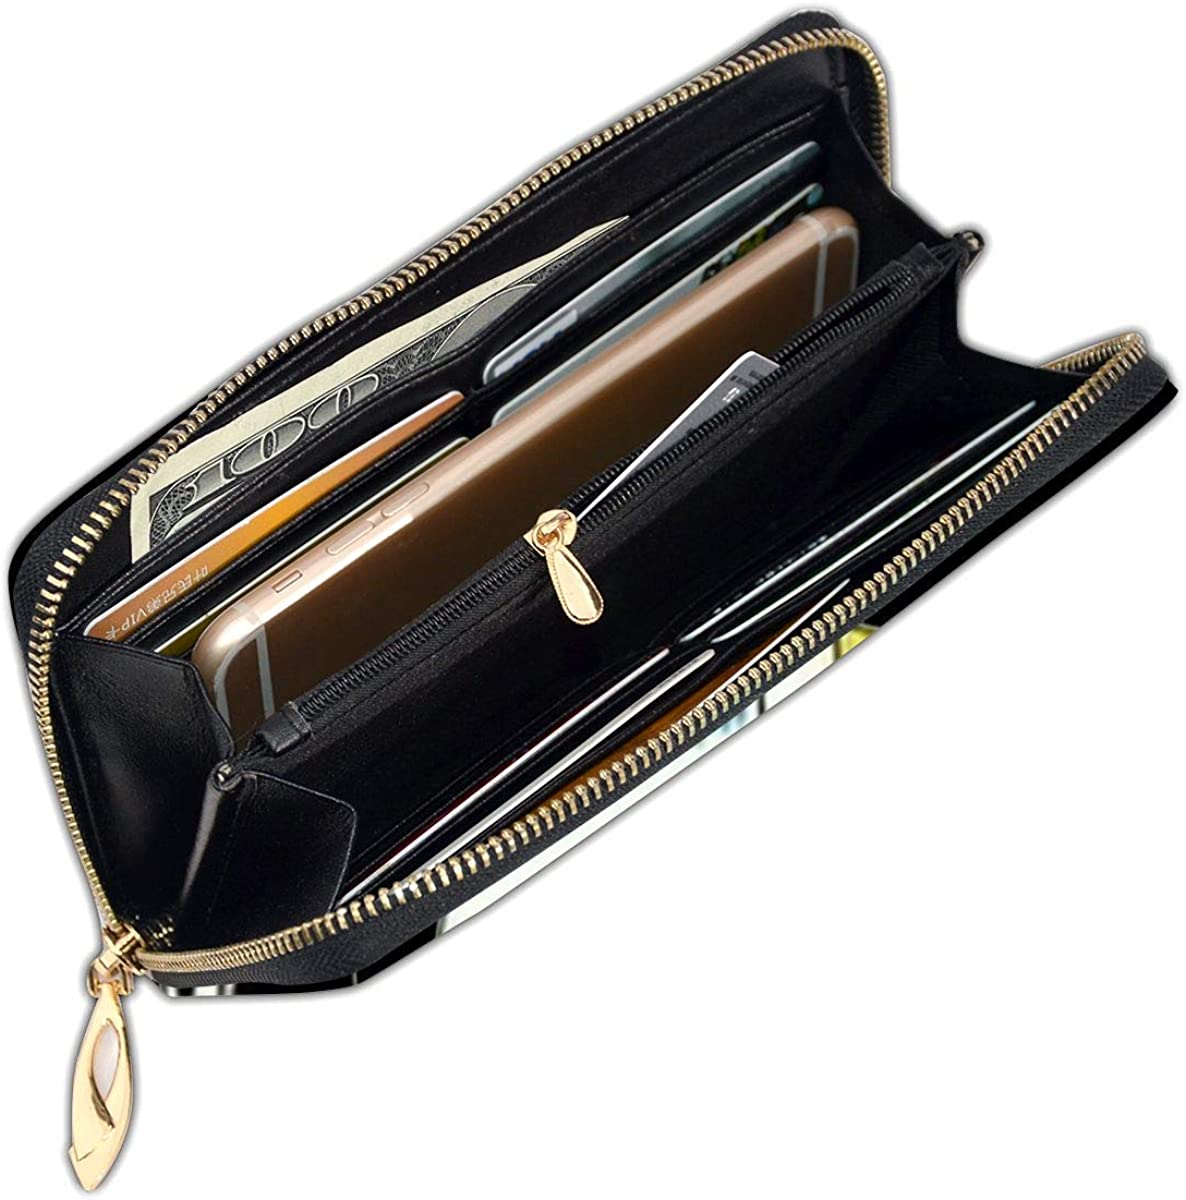 Easy To Carry Leather Wallet The Simpsons Stylish And Personal